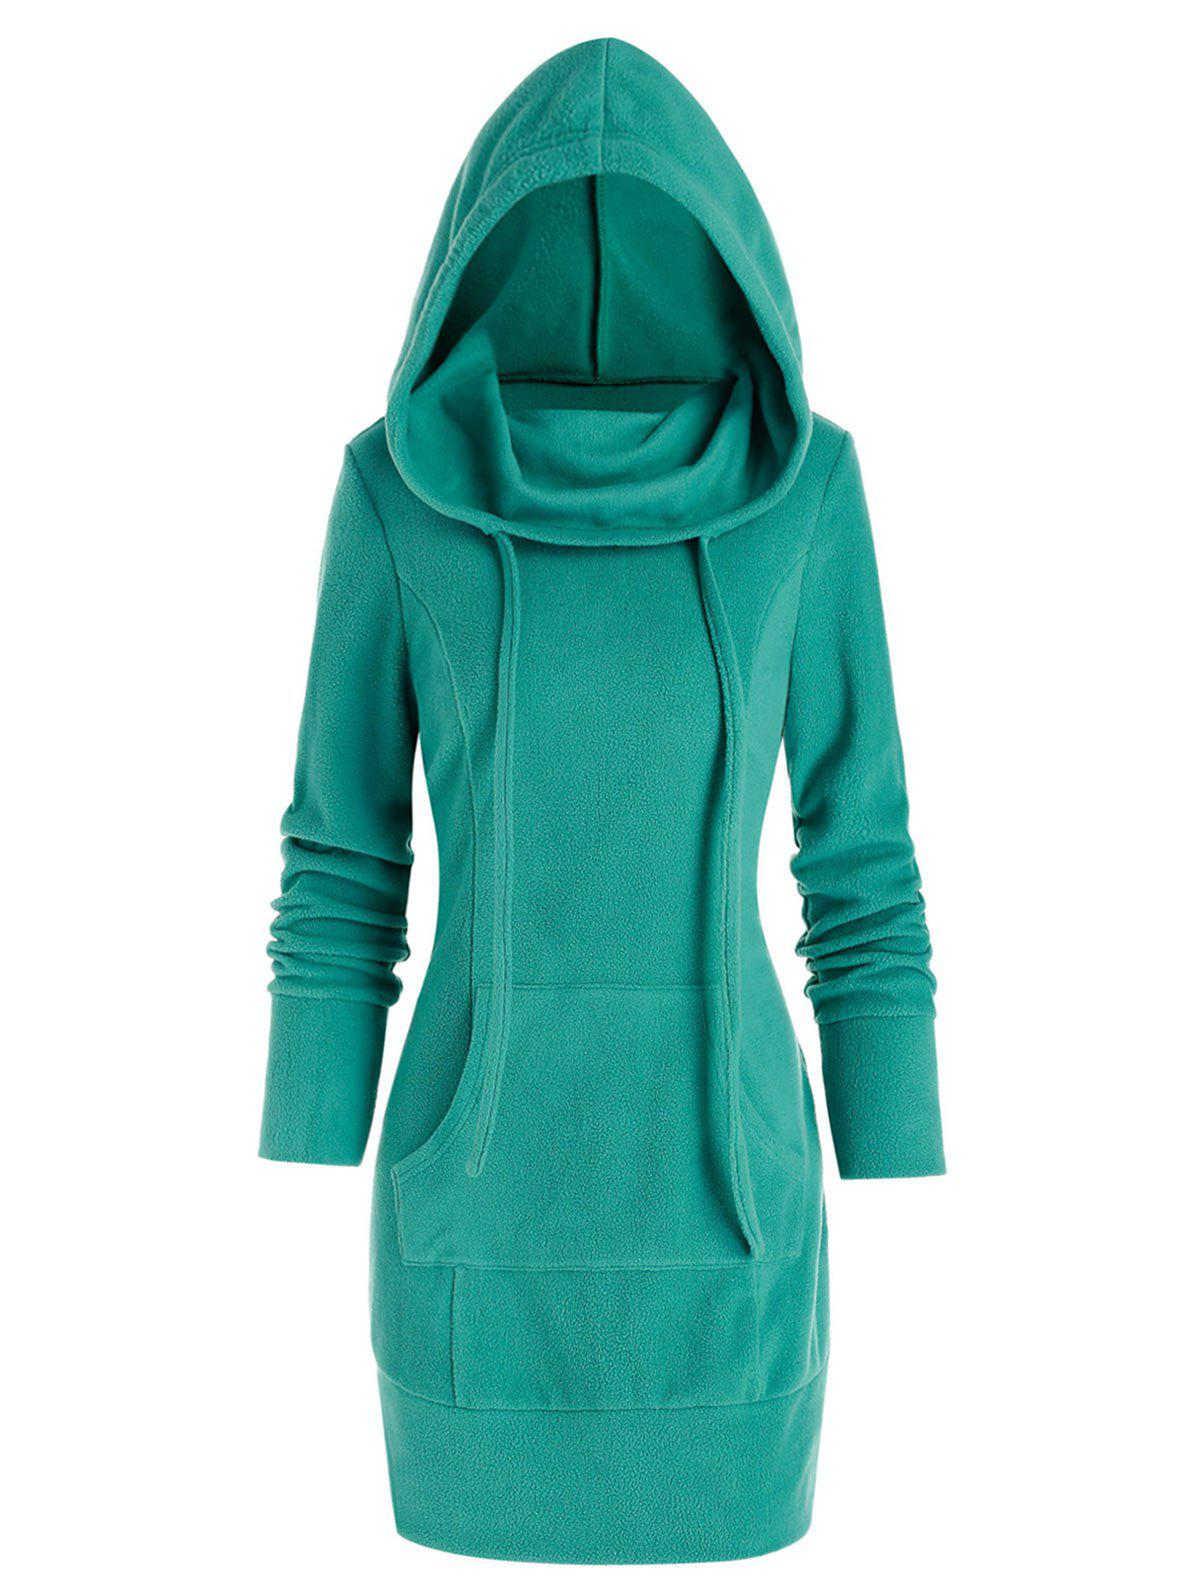 Fleece Kangaroo Pocket Mini Hoodie Dress - TURQUOISE 2XL